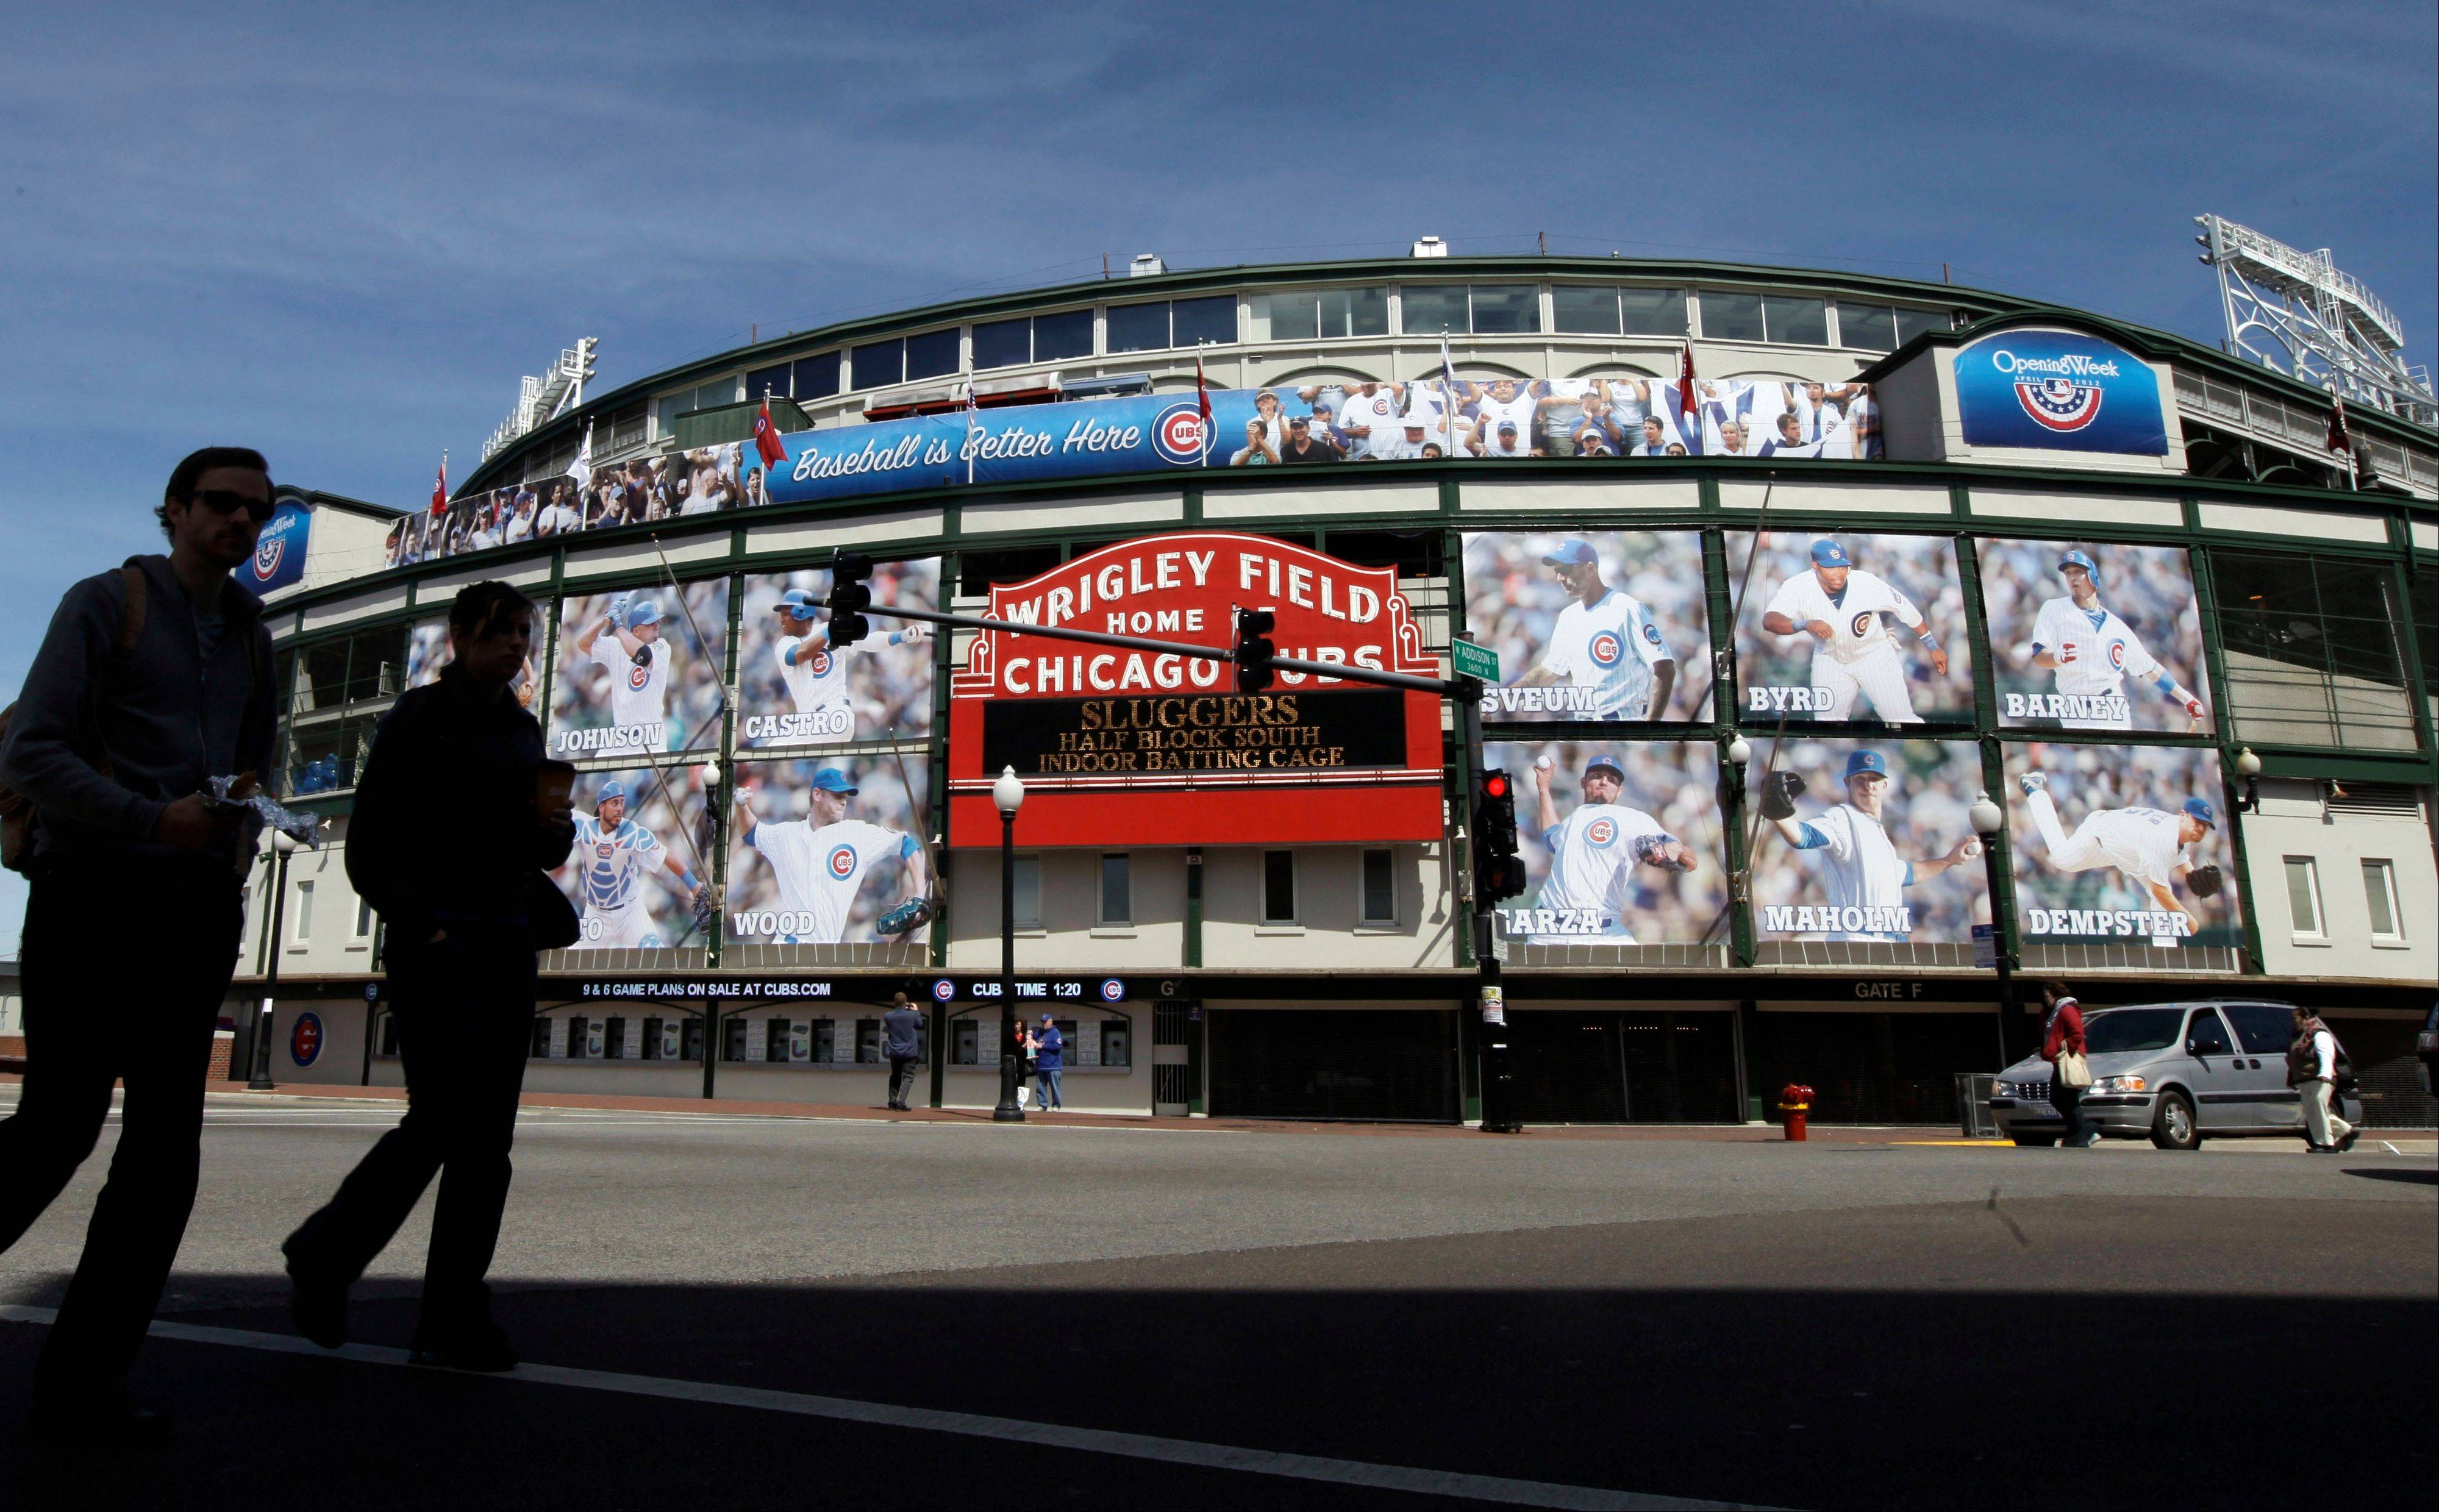 People walk by the marquee at Wrigley Field. All the baseball teams are based in major U.S. cities and many of the stadiums are situated in downtown areas with things to do and savory places to eat when you aren't attending a game.